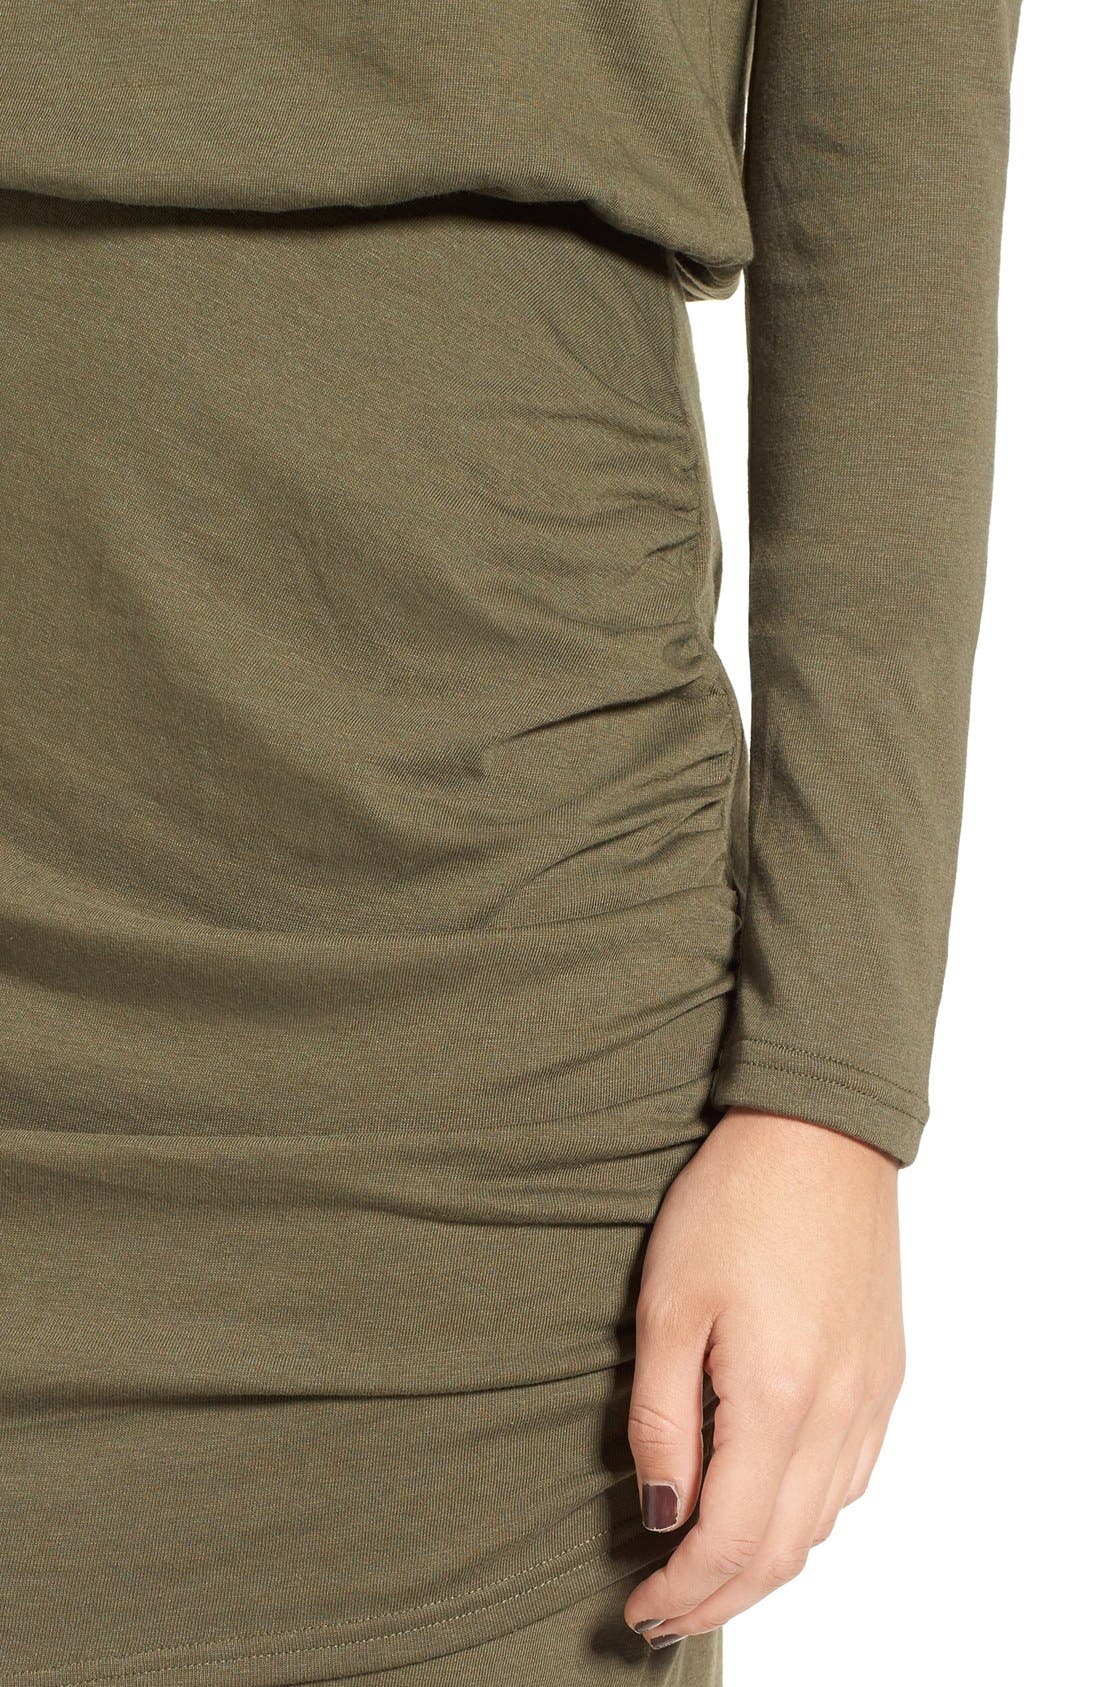 Blouson Body-Con Dress,                             Alternate thumbnail 4, color,                             Olive Sarma